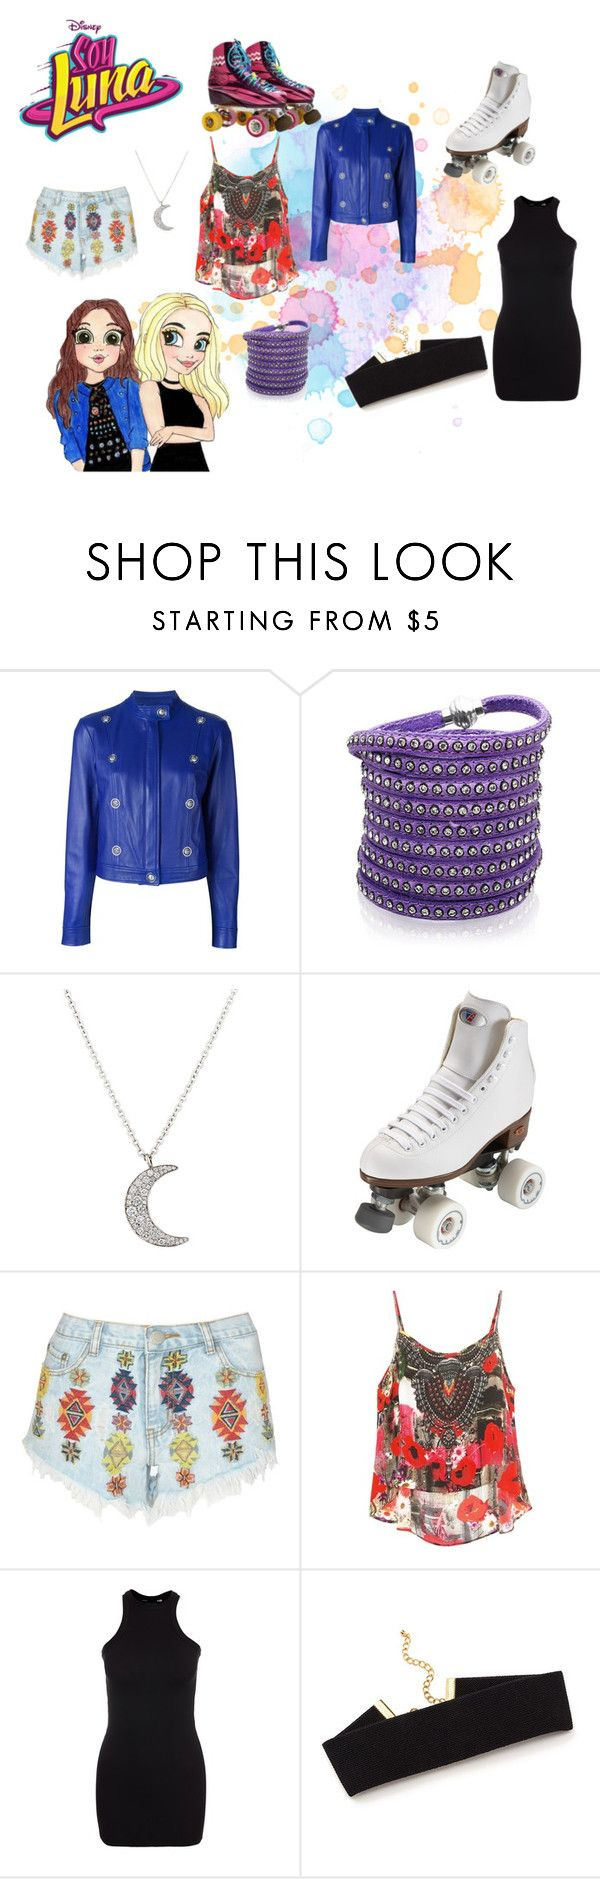 """""""soy luna"""" by maria-look on Polyvore featuring Versus, Sif Jakobs Jewellery, Finn, Riedell, Lipsy and New Look"""